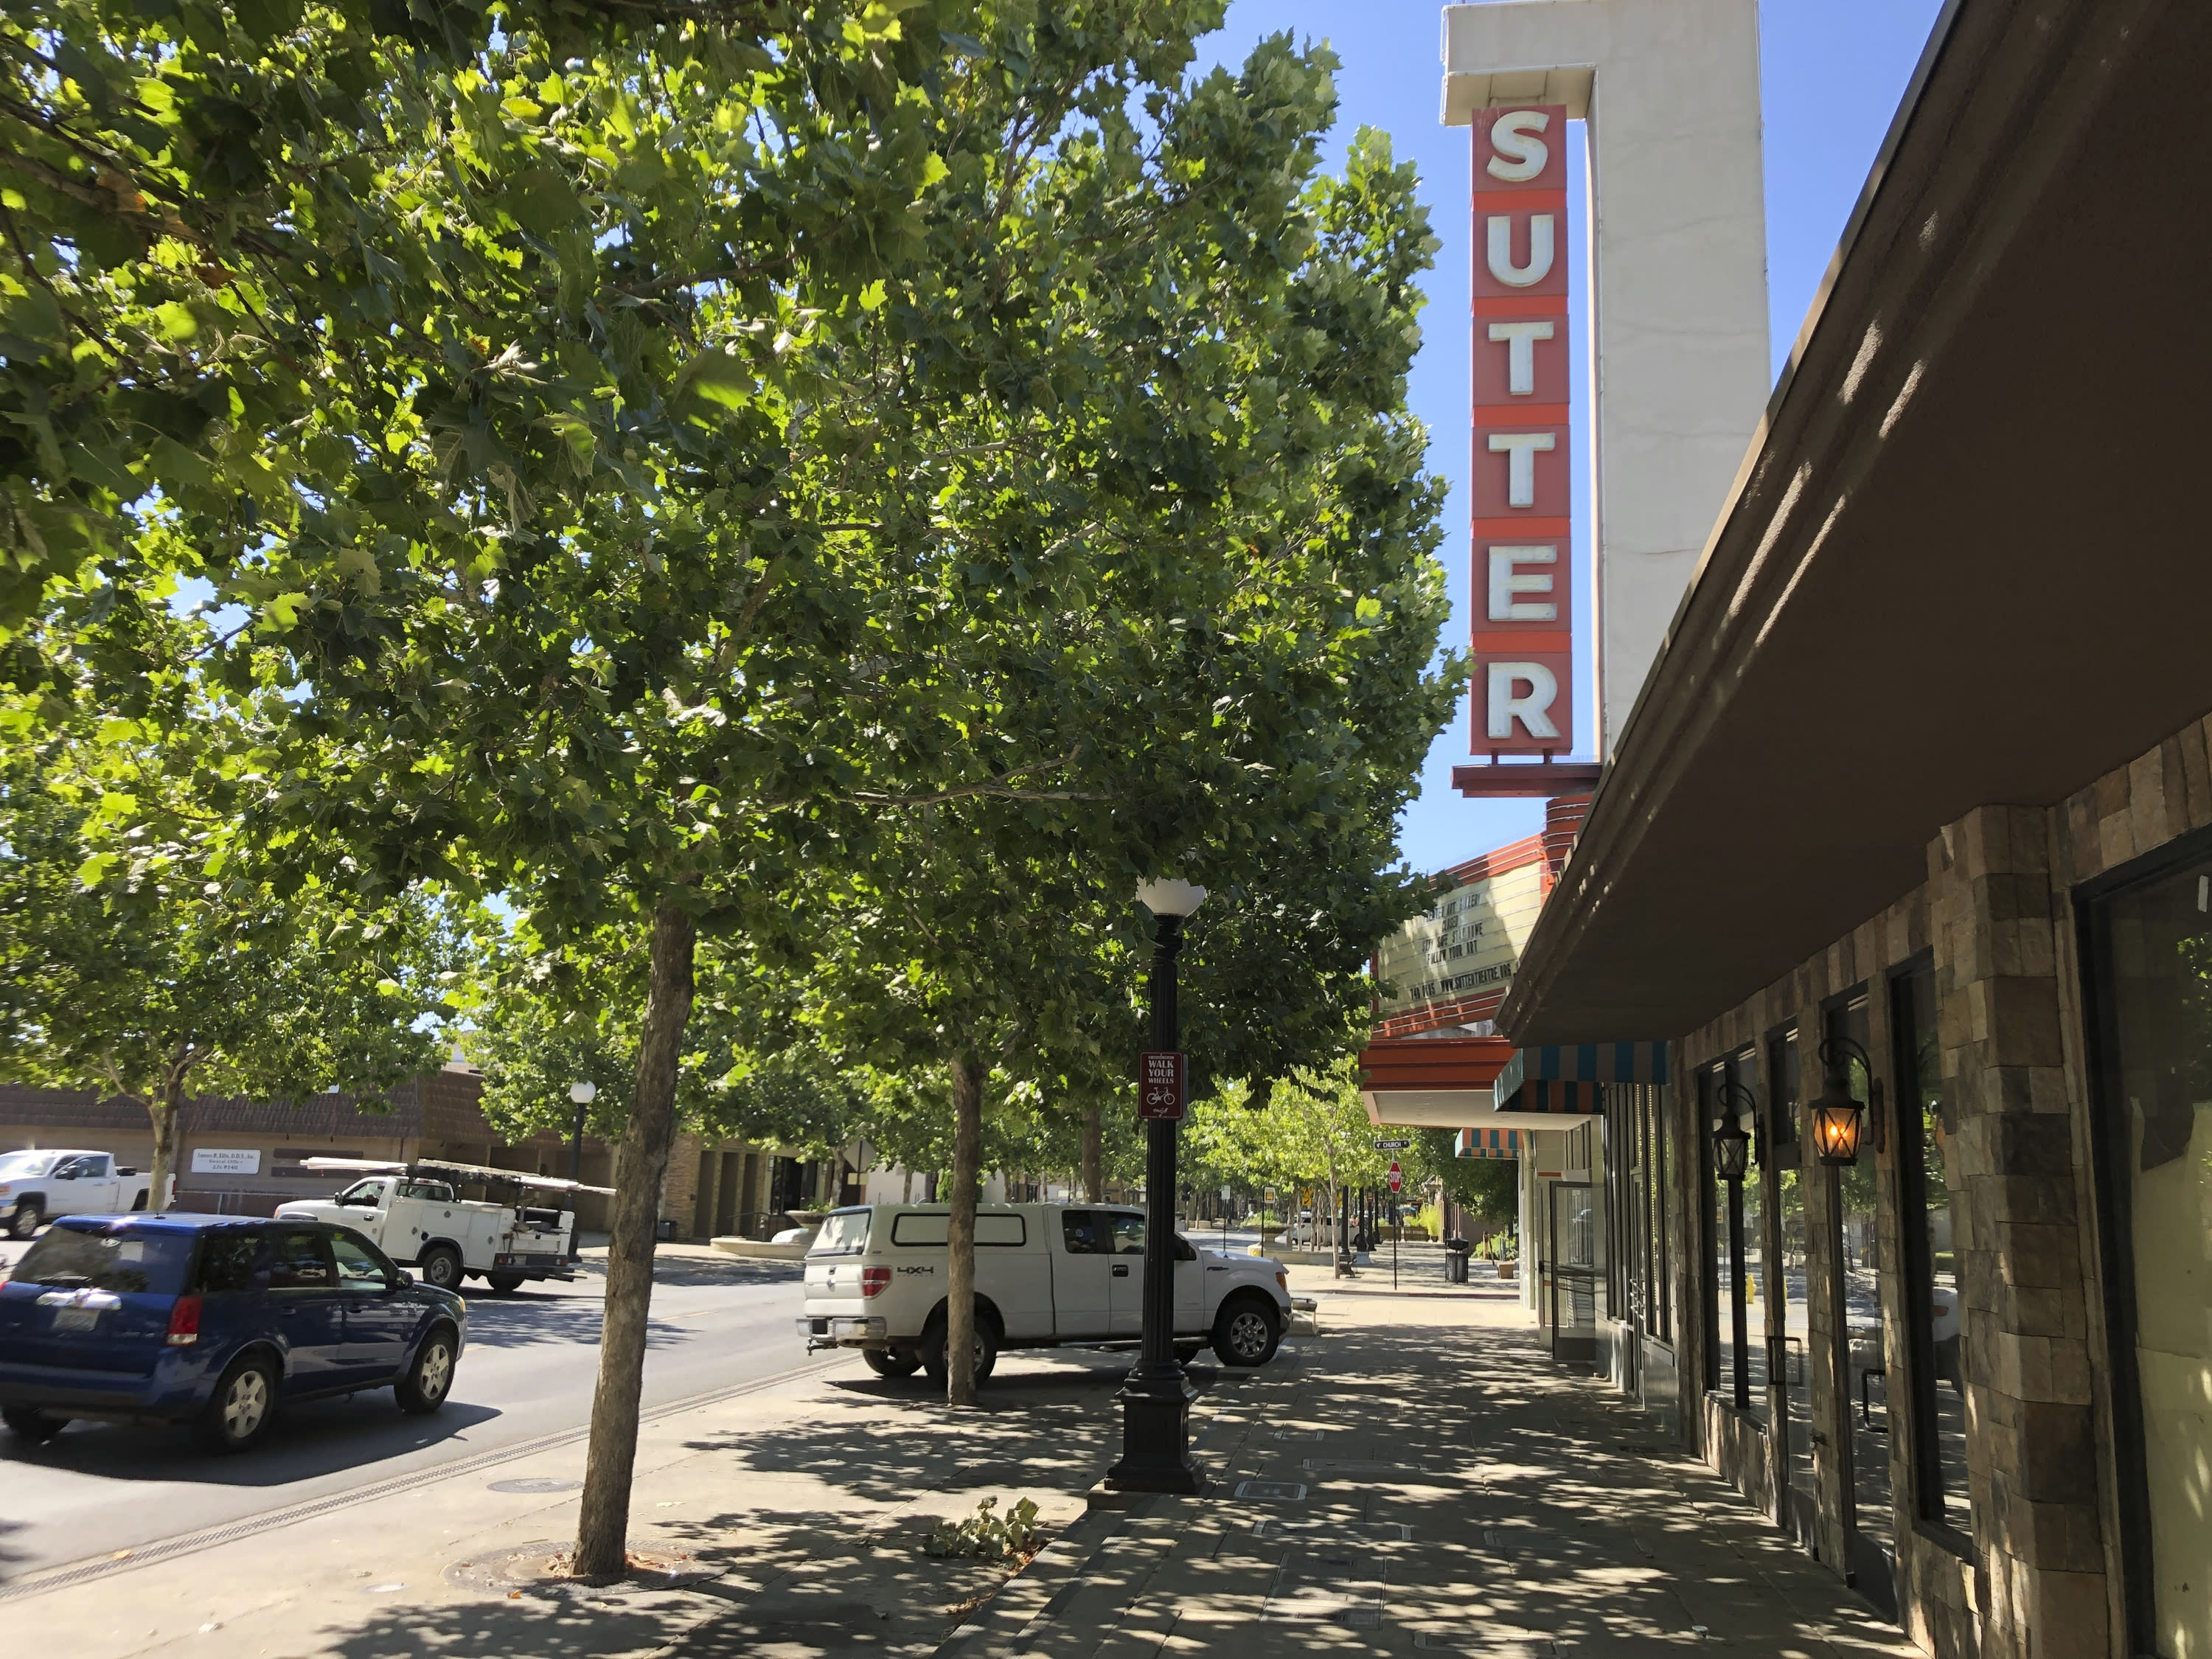 The Sutter Theater is seen on Plumas Street in Yuba City, Calif., Thursday, July 9, 2020. Sutter County was one of the first counties to reopen its economy when it defied Gov. Gavin Newsom's stay-at-home order in May to allow restaurants, hair salons, gyms and shopping malls to reopen. But Thursday, the county was added to a state watch list because of its rising number of coronavirus cases and hospitalizations. That will eventually trigger another round of restrictions, forcing bars to close and indoor operations to cease at restaurants and other public places for three weeks. (AP Photo/Adam Beam)